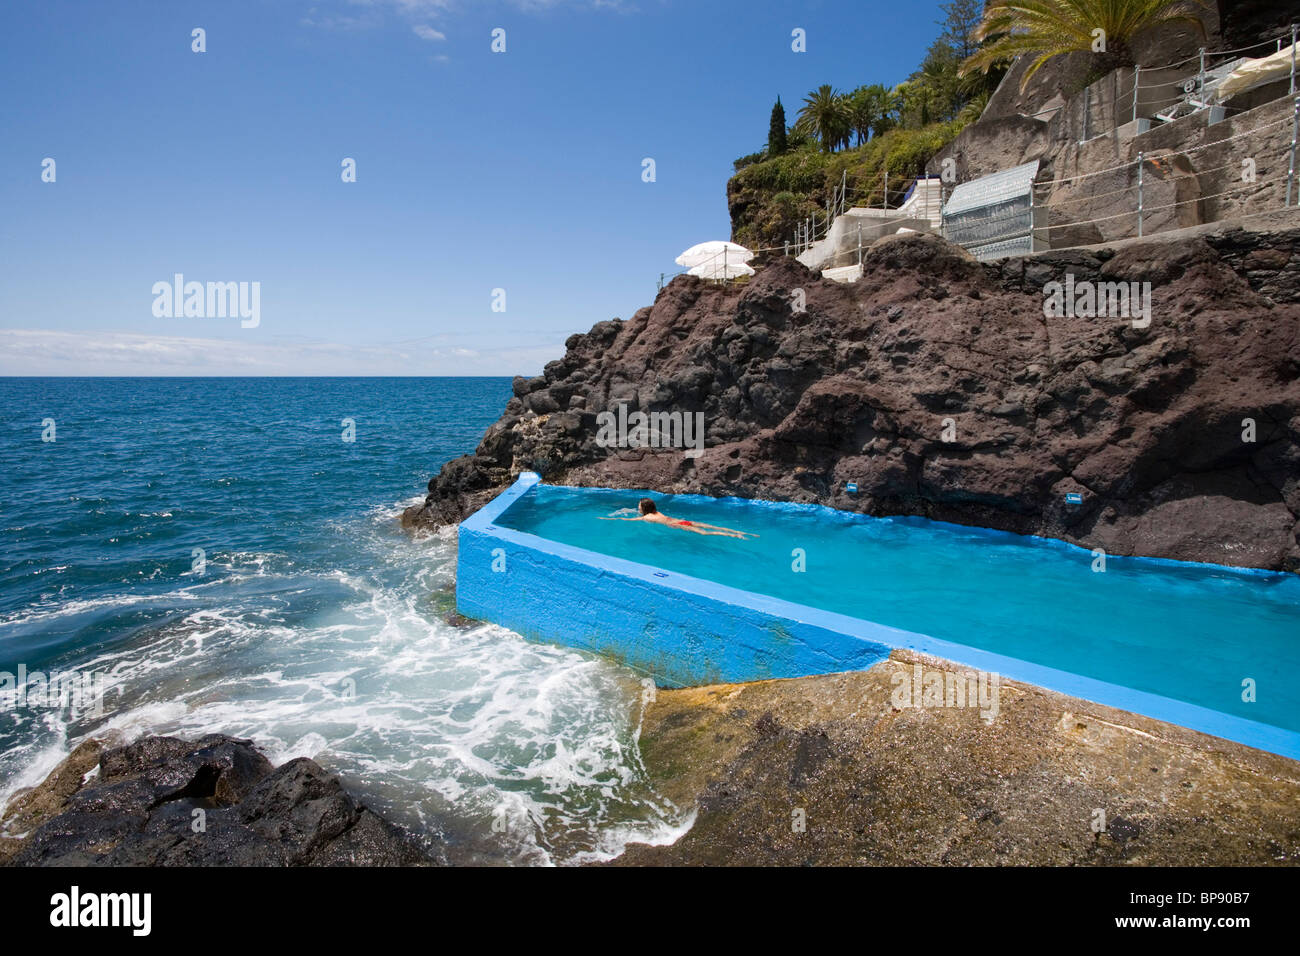 seawater swimming pool at reid 39 s palace hotel funchal madeira stock photo royalty free image. Black Bedroom Furniture Sets. Home Design Ideas